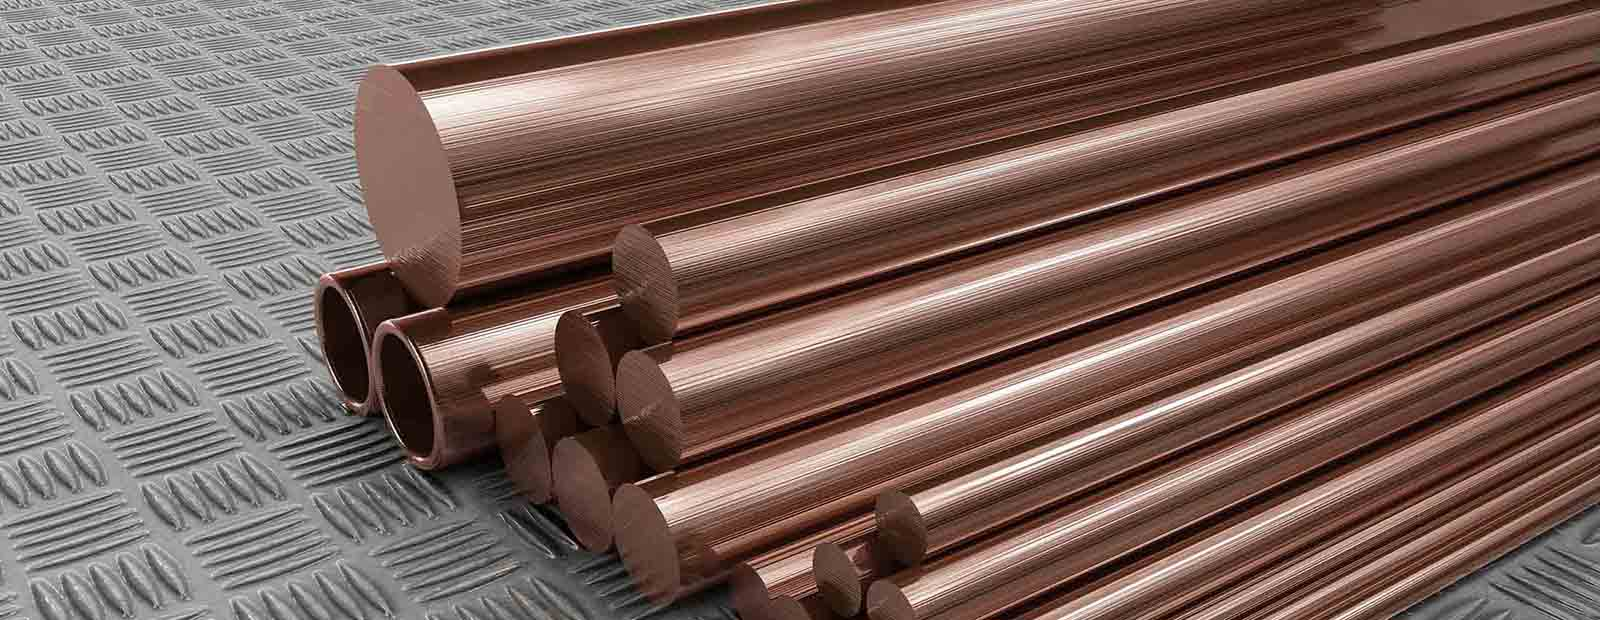 copper-bars-tubes-sale